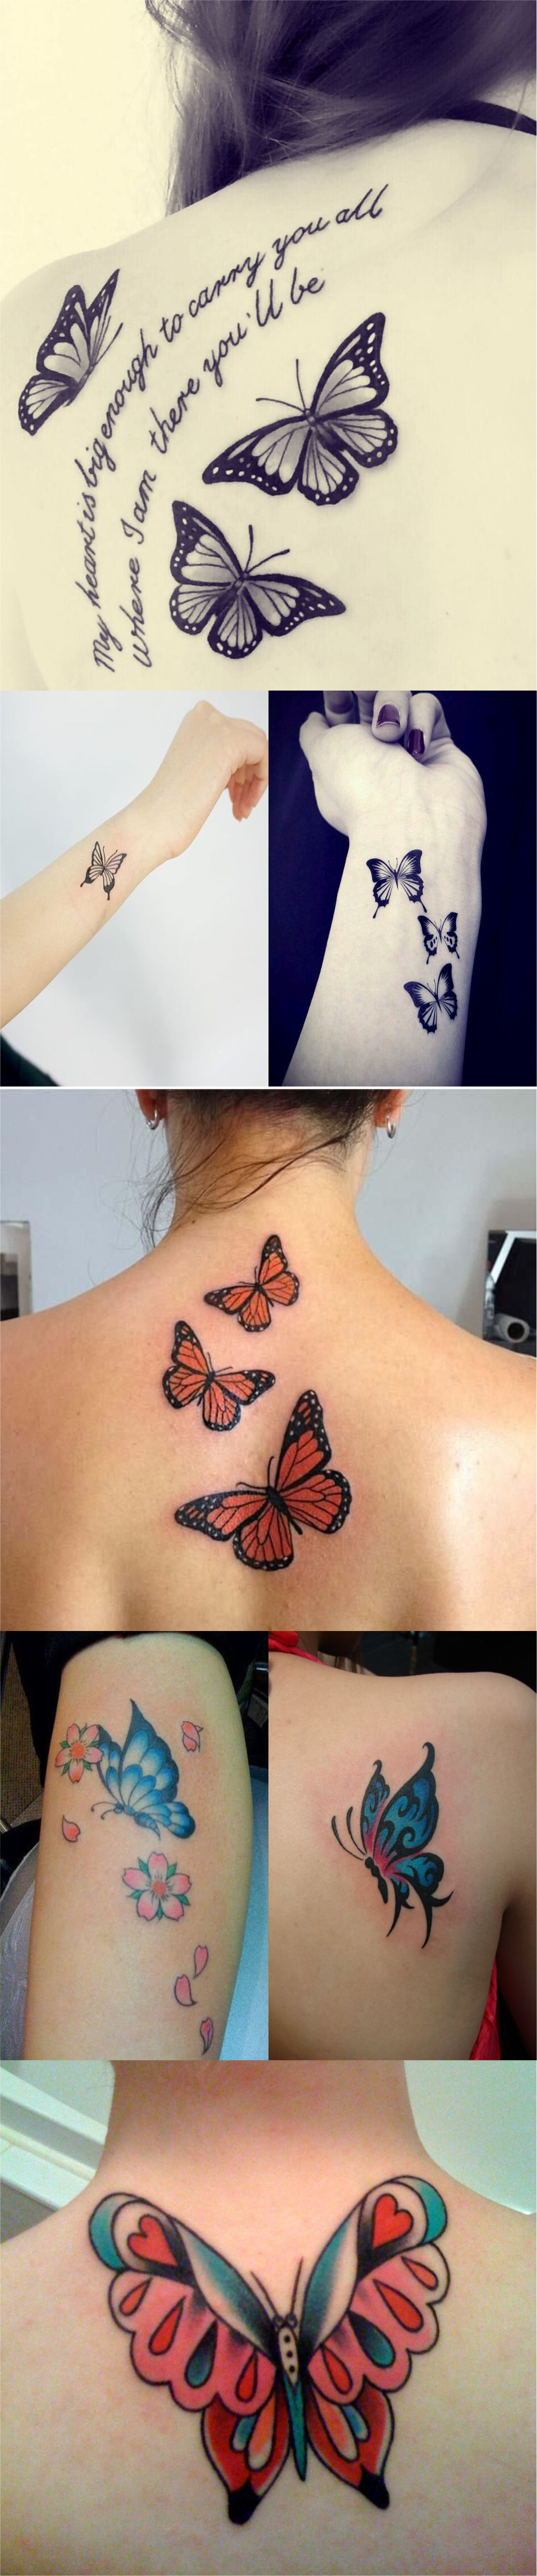 Best butterfly tattoos idea 2018